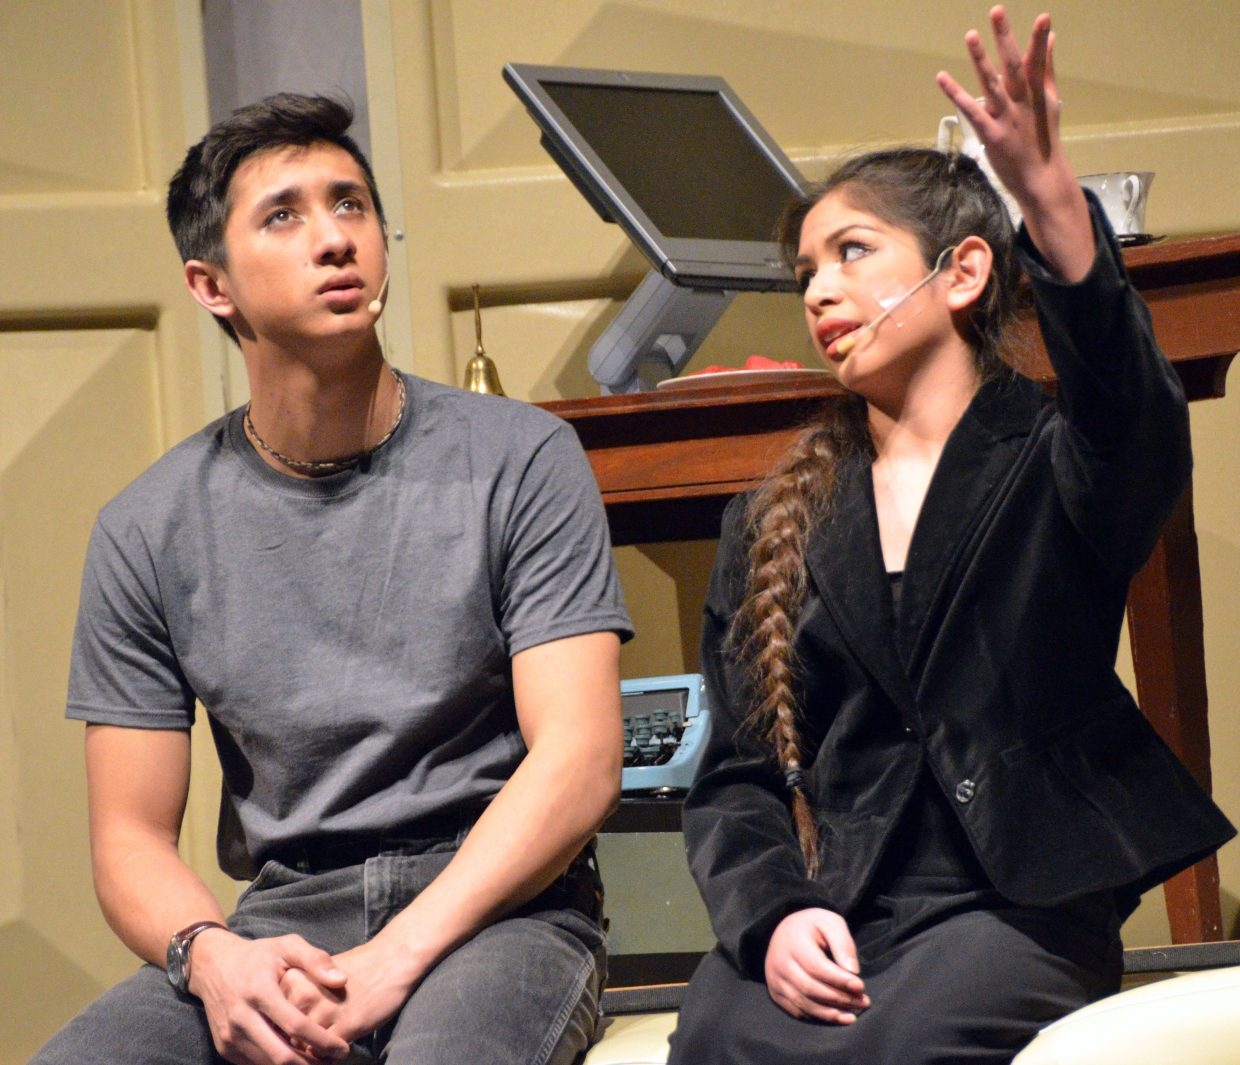 Jonas (Sambu Shrestha) and his new teacher (Maria Sanchez-Silva) have a heart-to-heart talk in